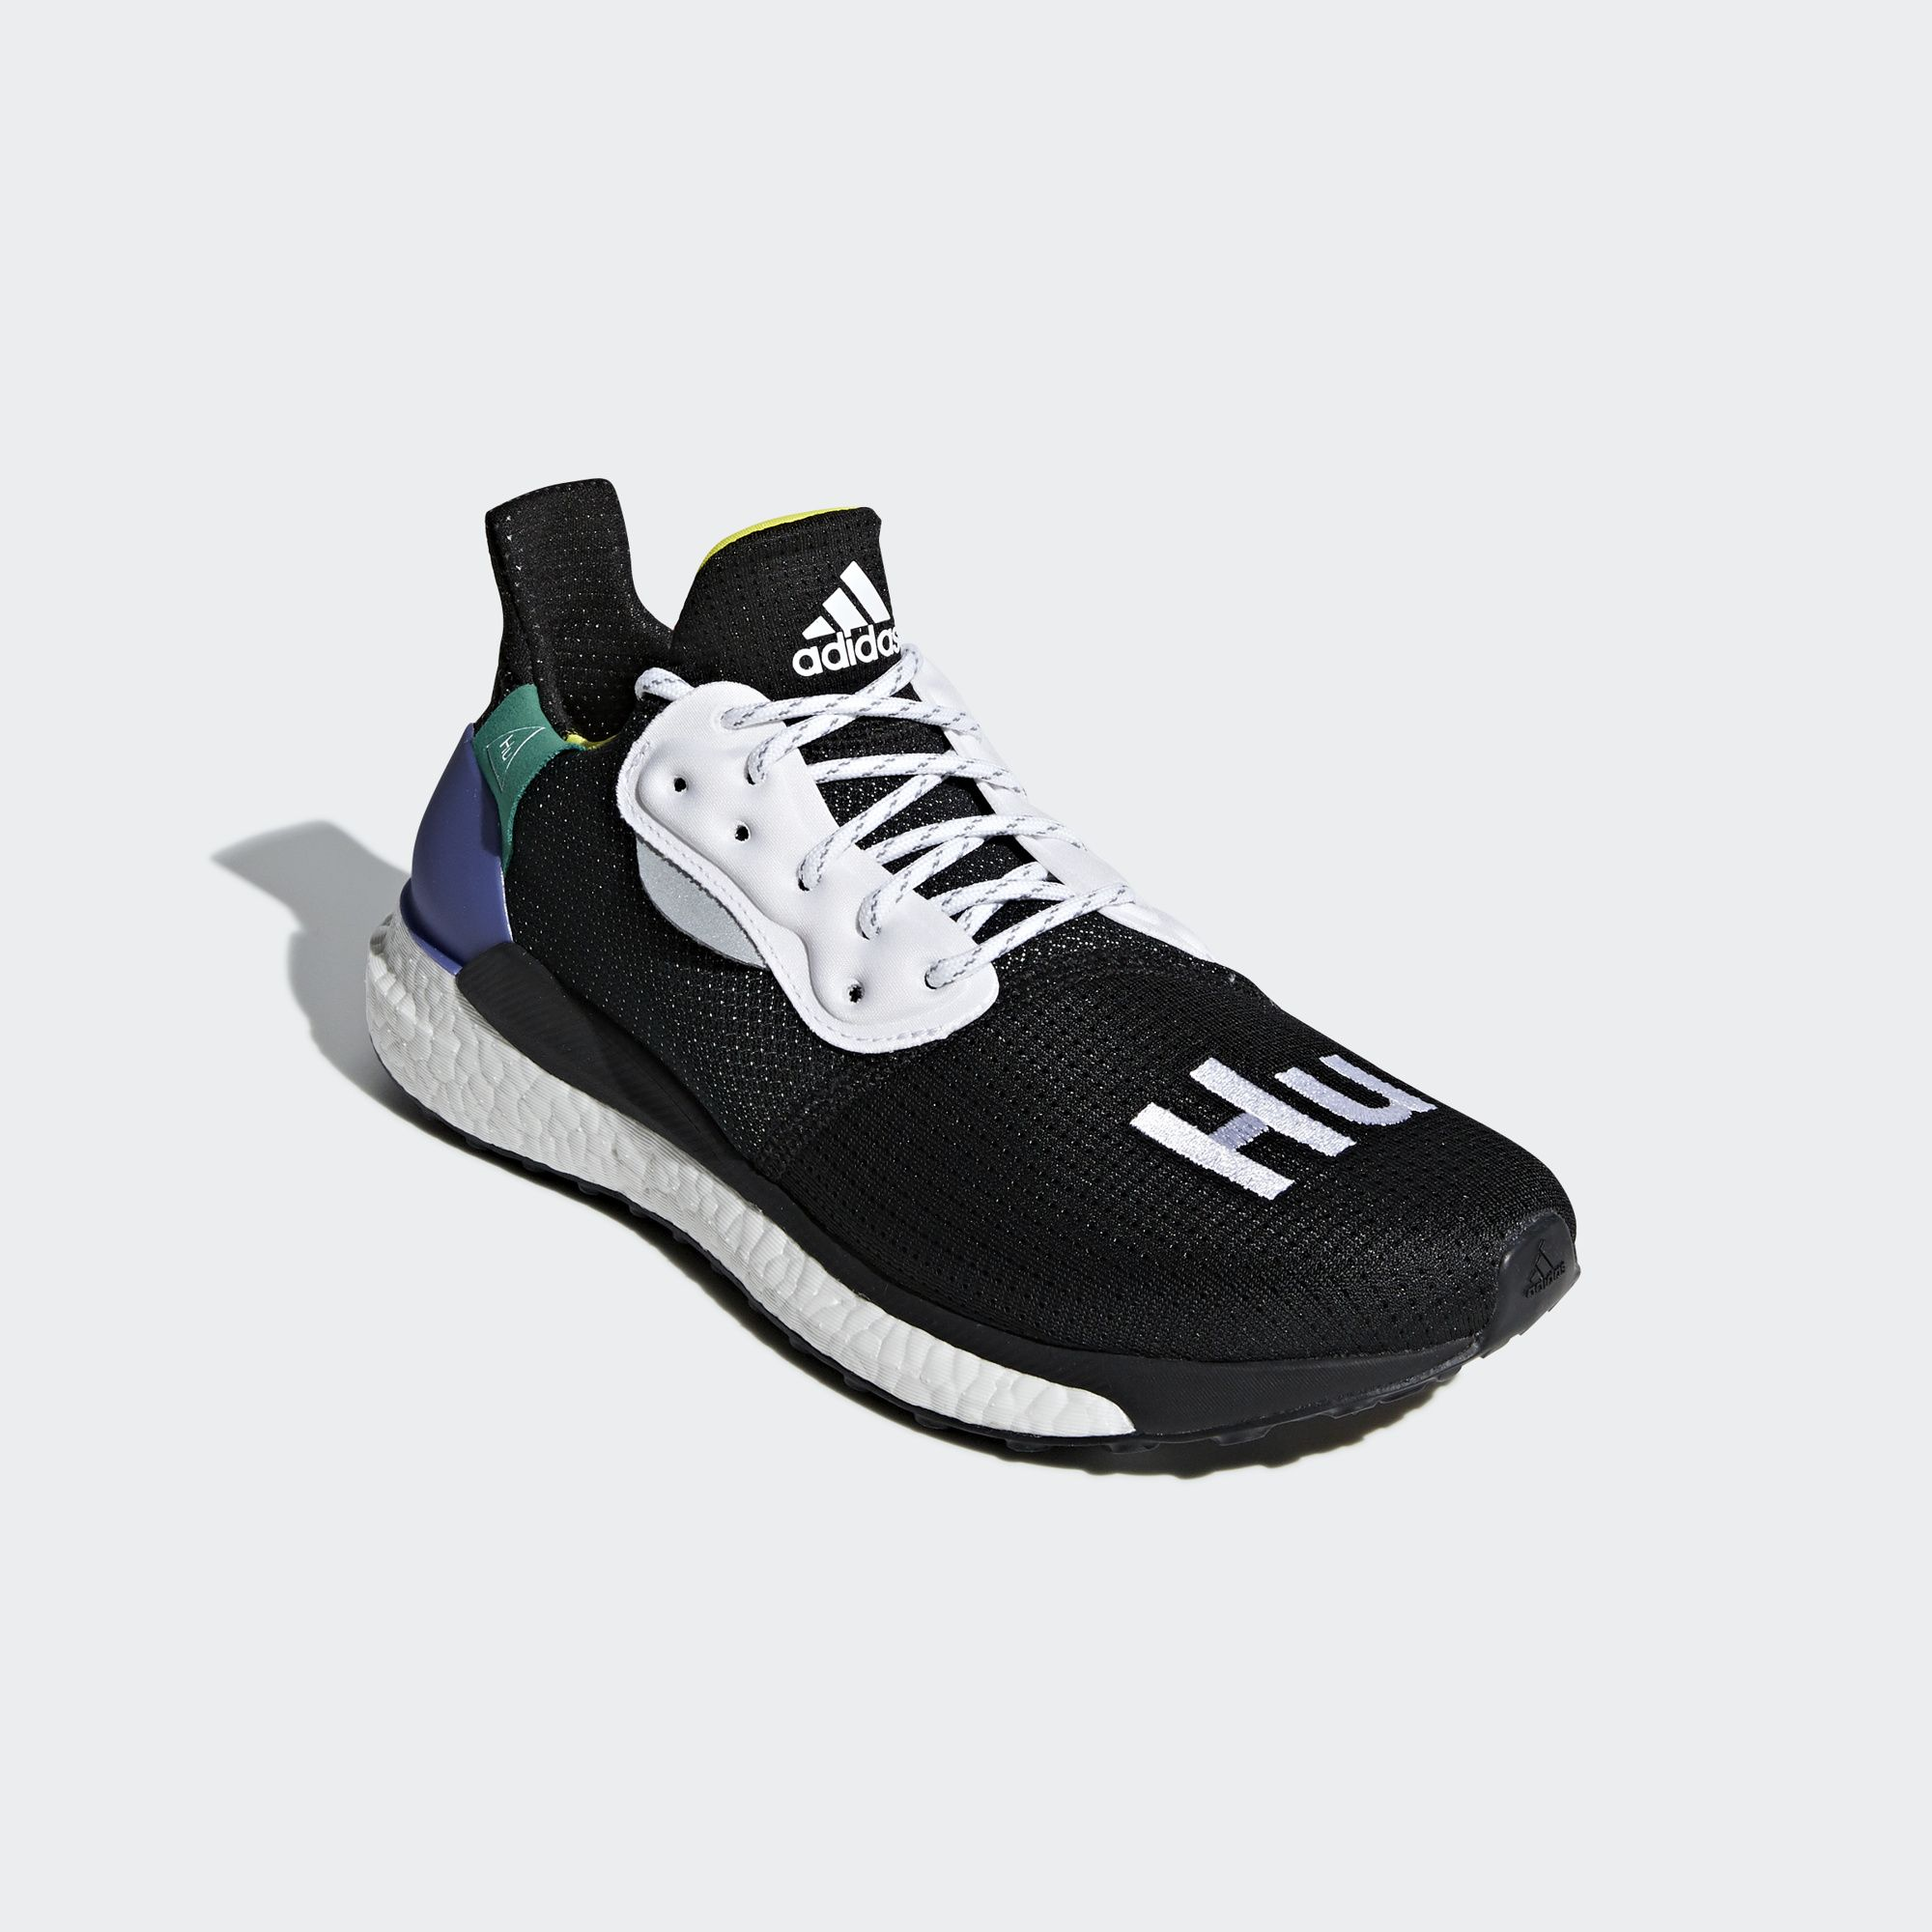 03-adidas-pharrell-williams-hu-solar-glide-00-black-bb8041